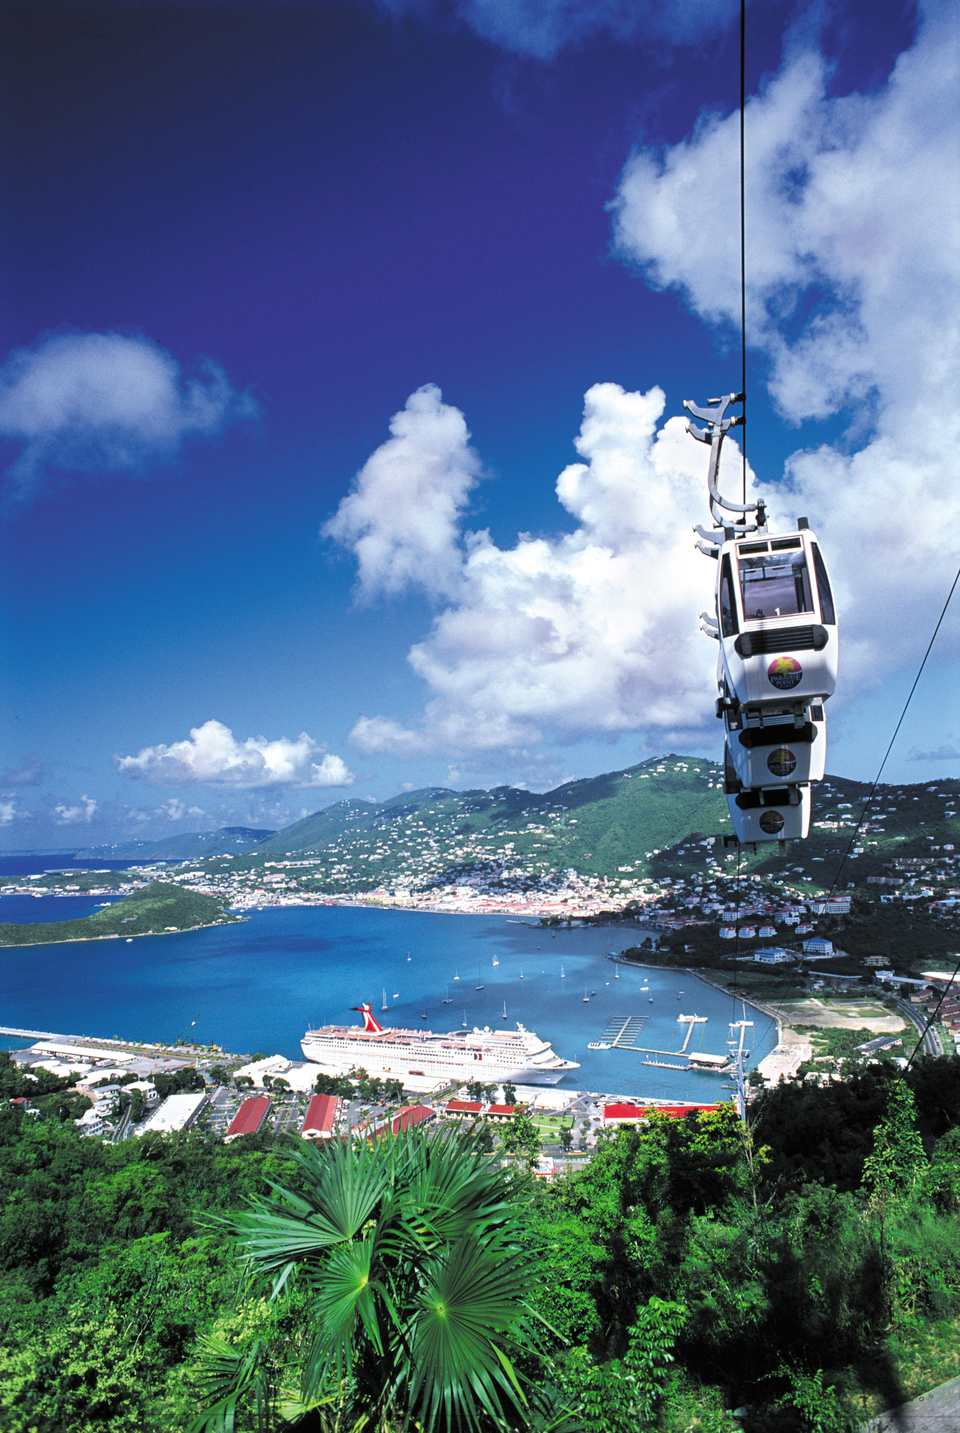 What Is The Most Popular Virgin Island For Tourism